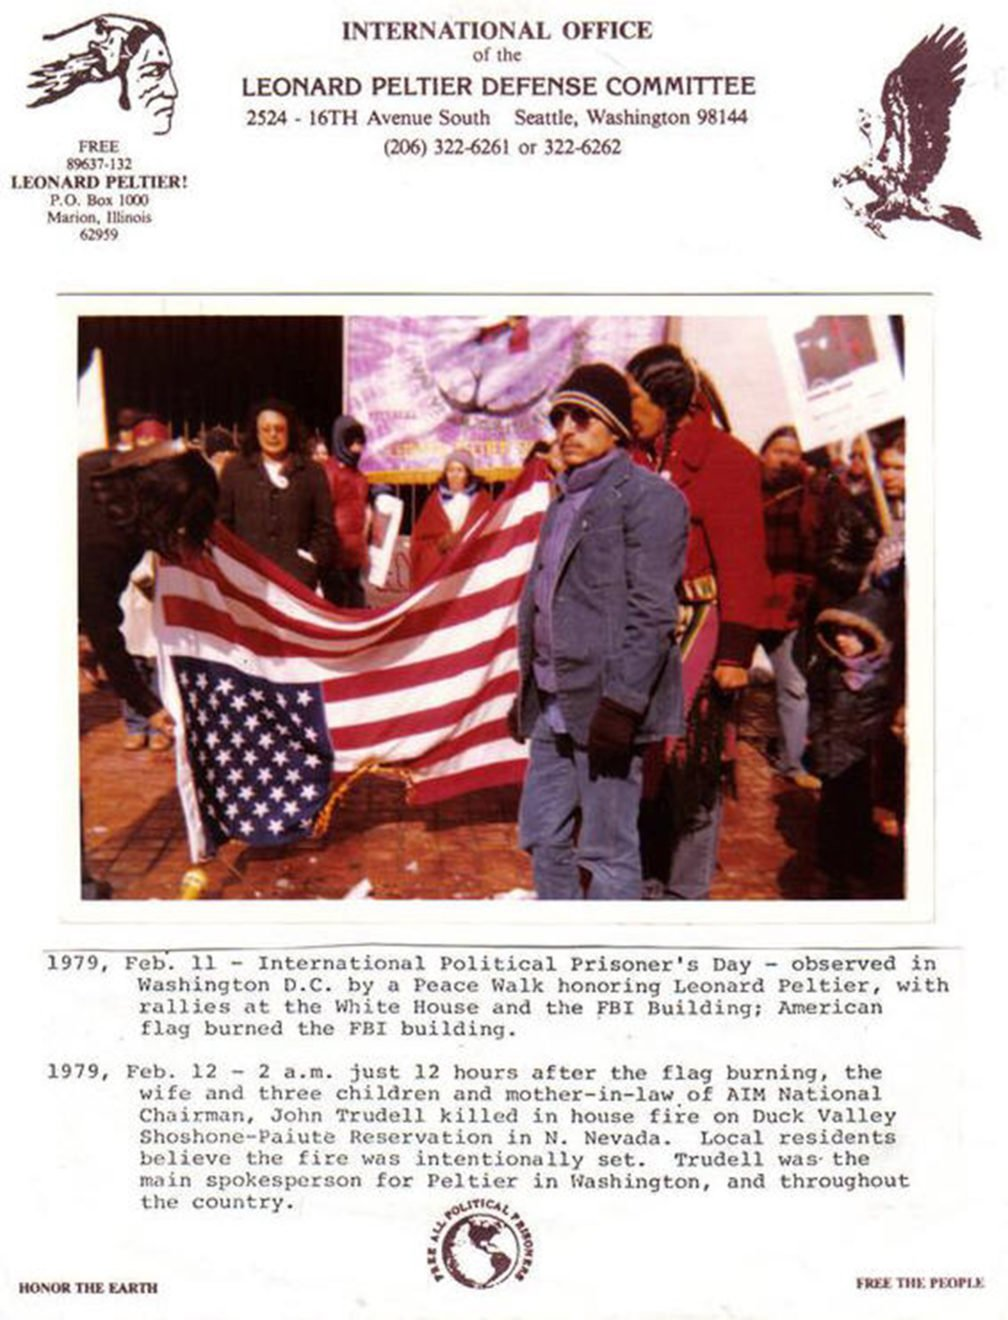 a group of people burning an american flag